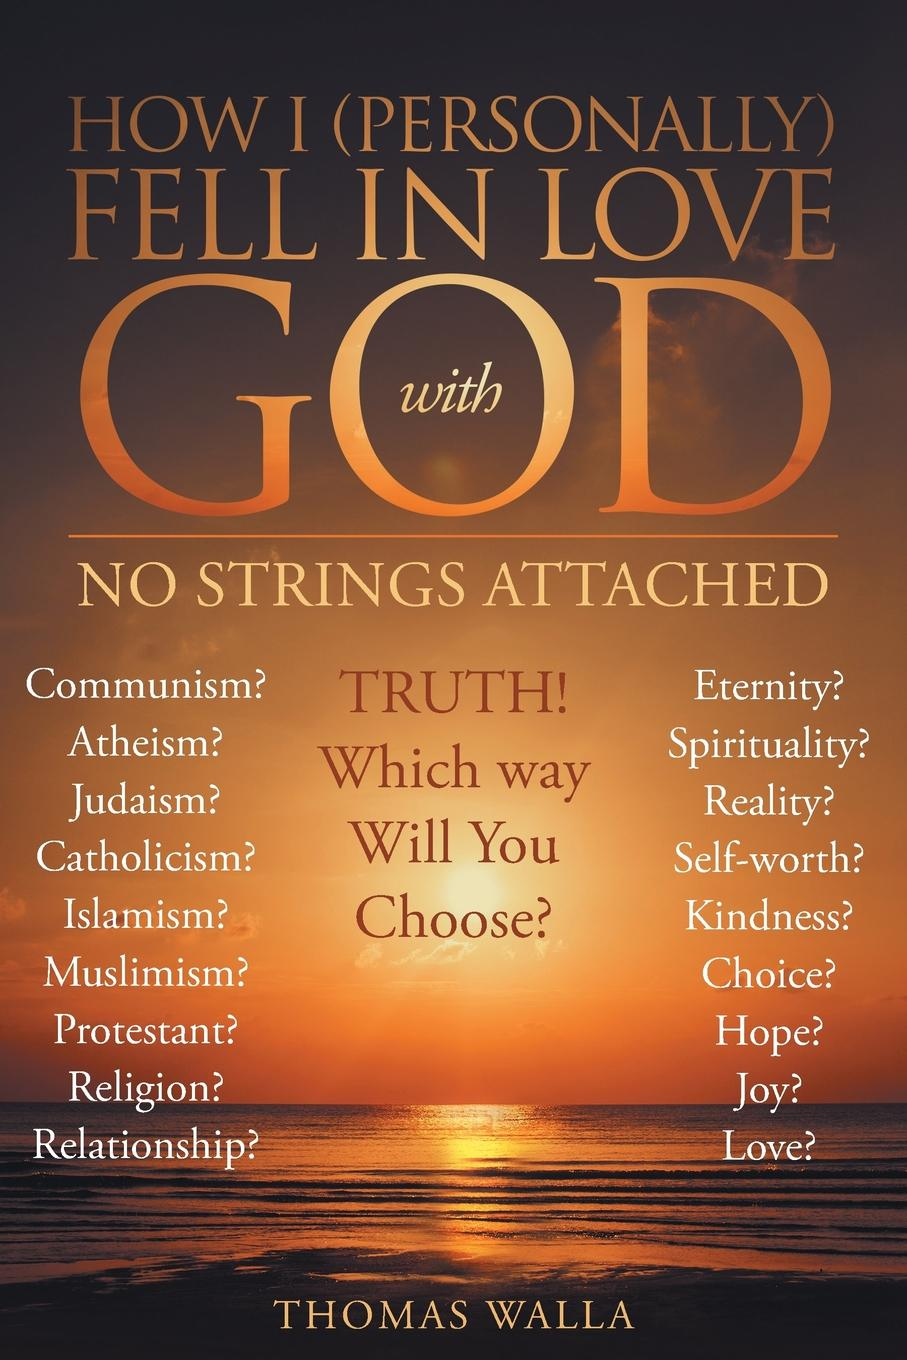 Thomas Walla How I (Personally) Fell In Love With God. No Strings Attached thomas walla how i personally fell in love with god no strings attached